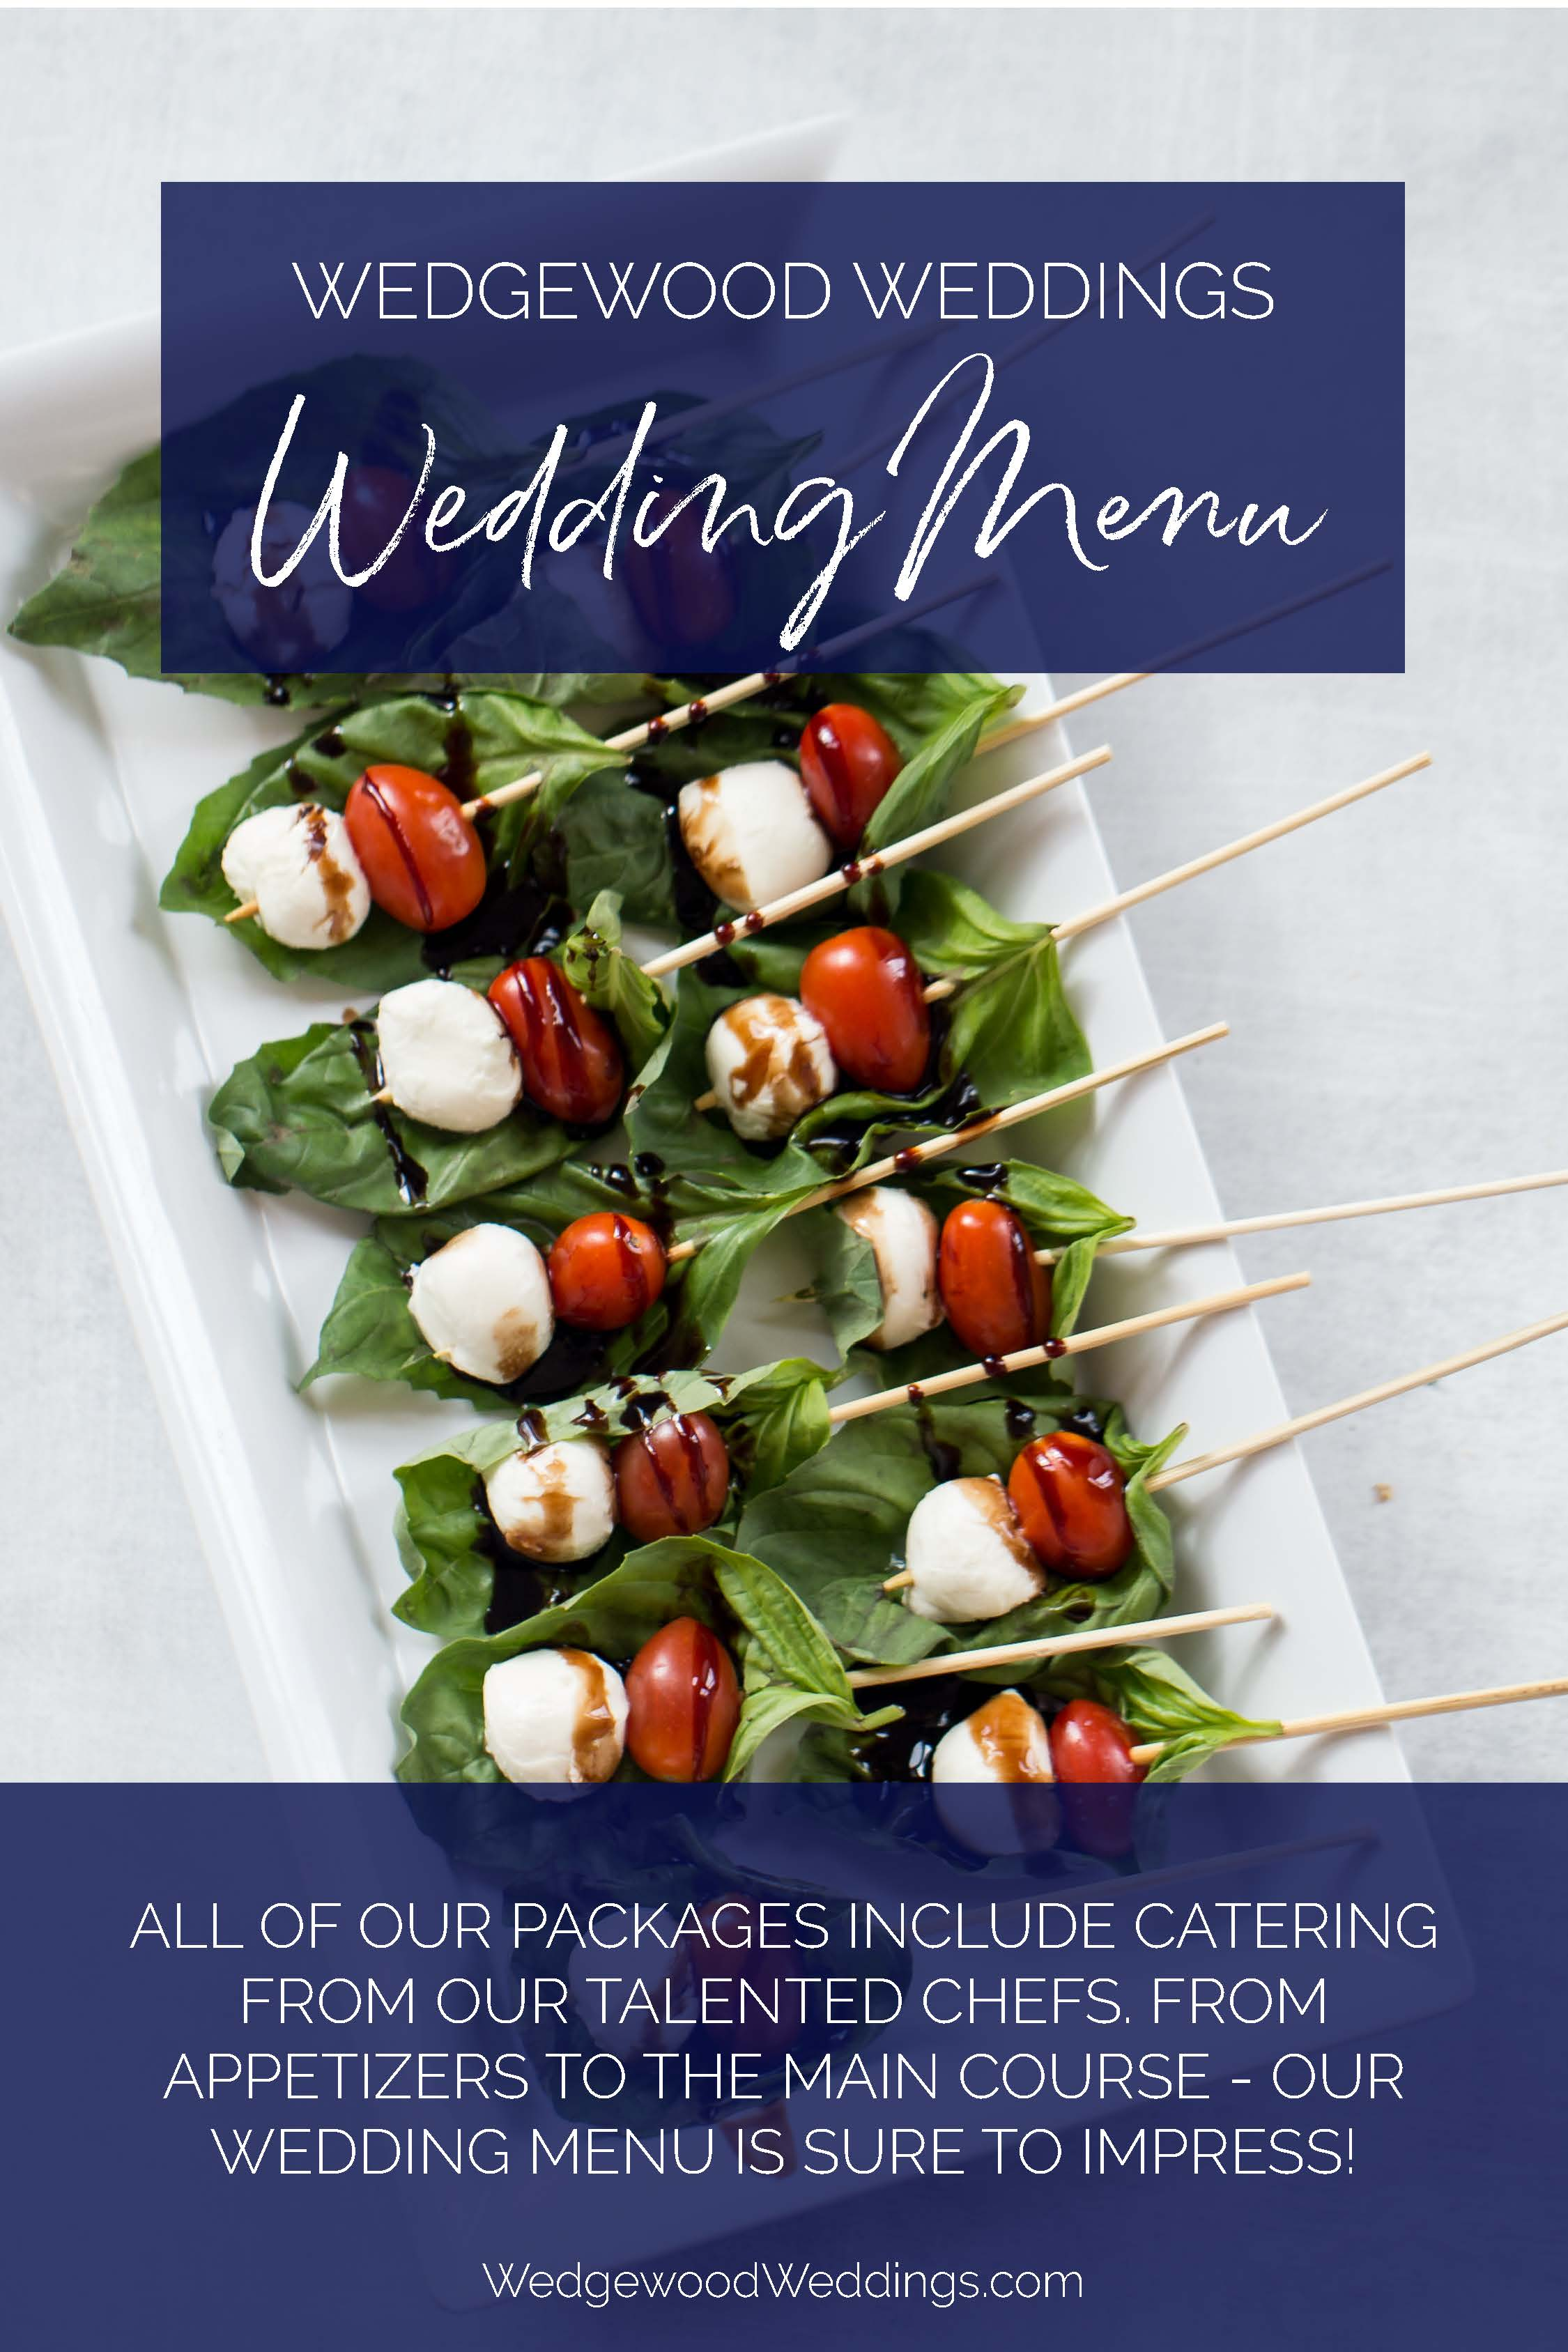 What makes the best wedding food? Awesome wedding menus! Give your guests something to talk about by serving them the best wedding food at an incredible Wedgewood Weddings venue. Get started planning today by calling or texting our expert wedding team at 866.966.3009.